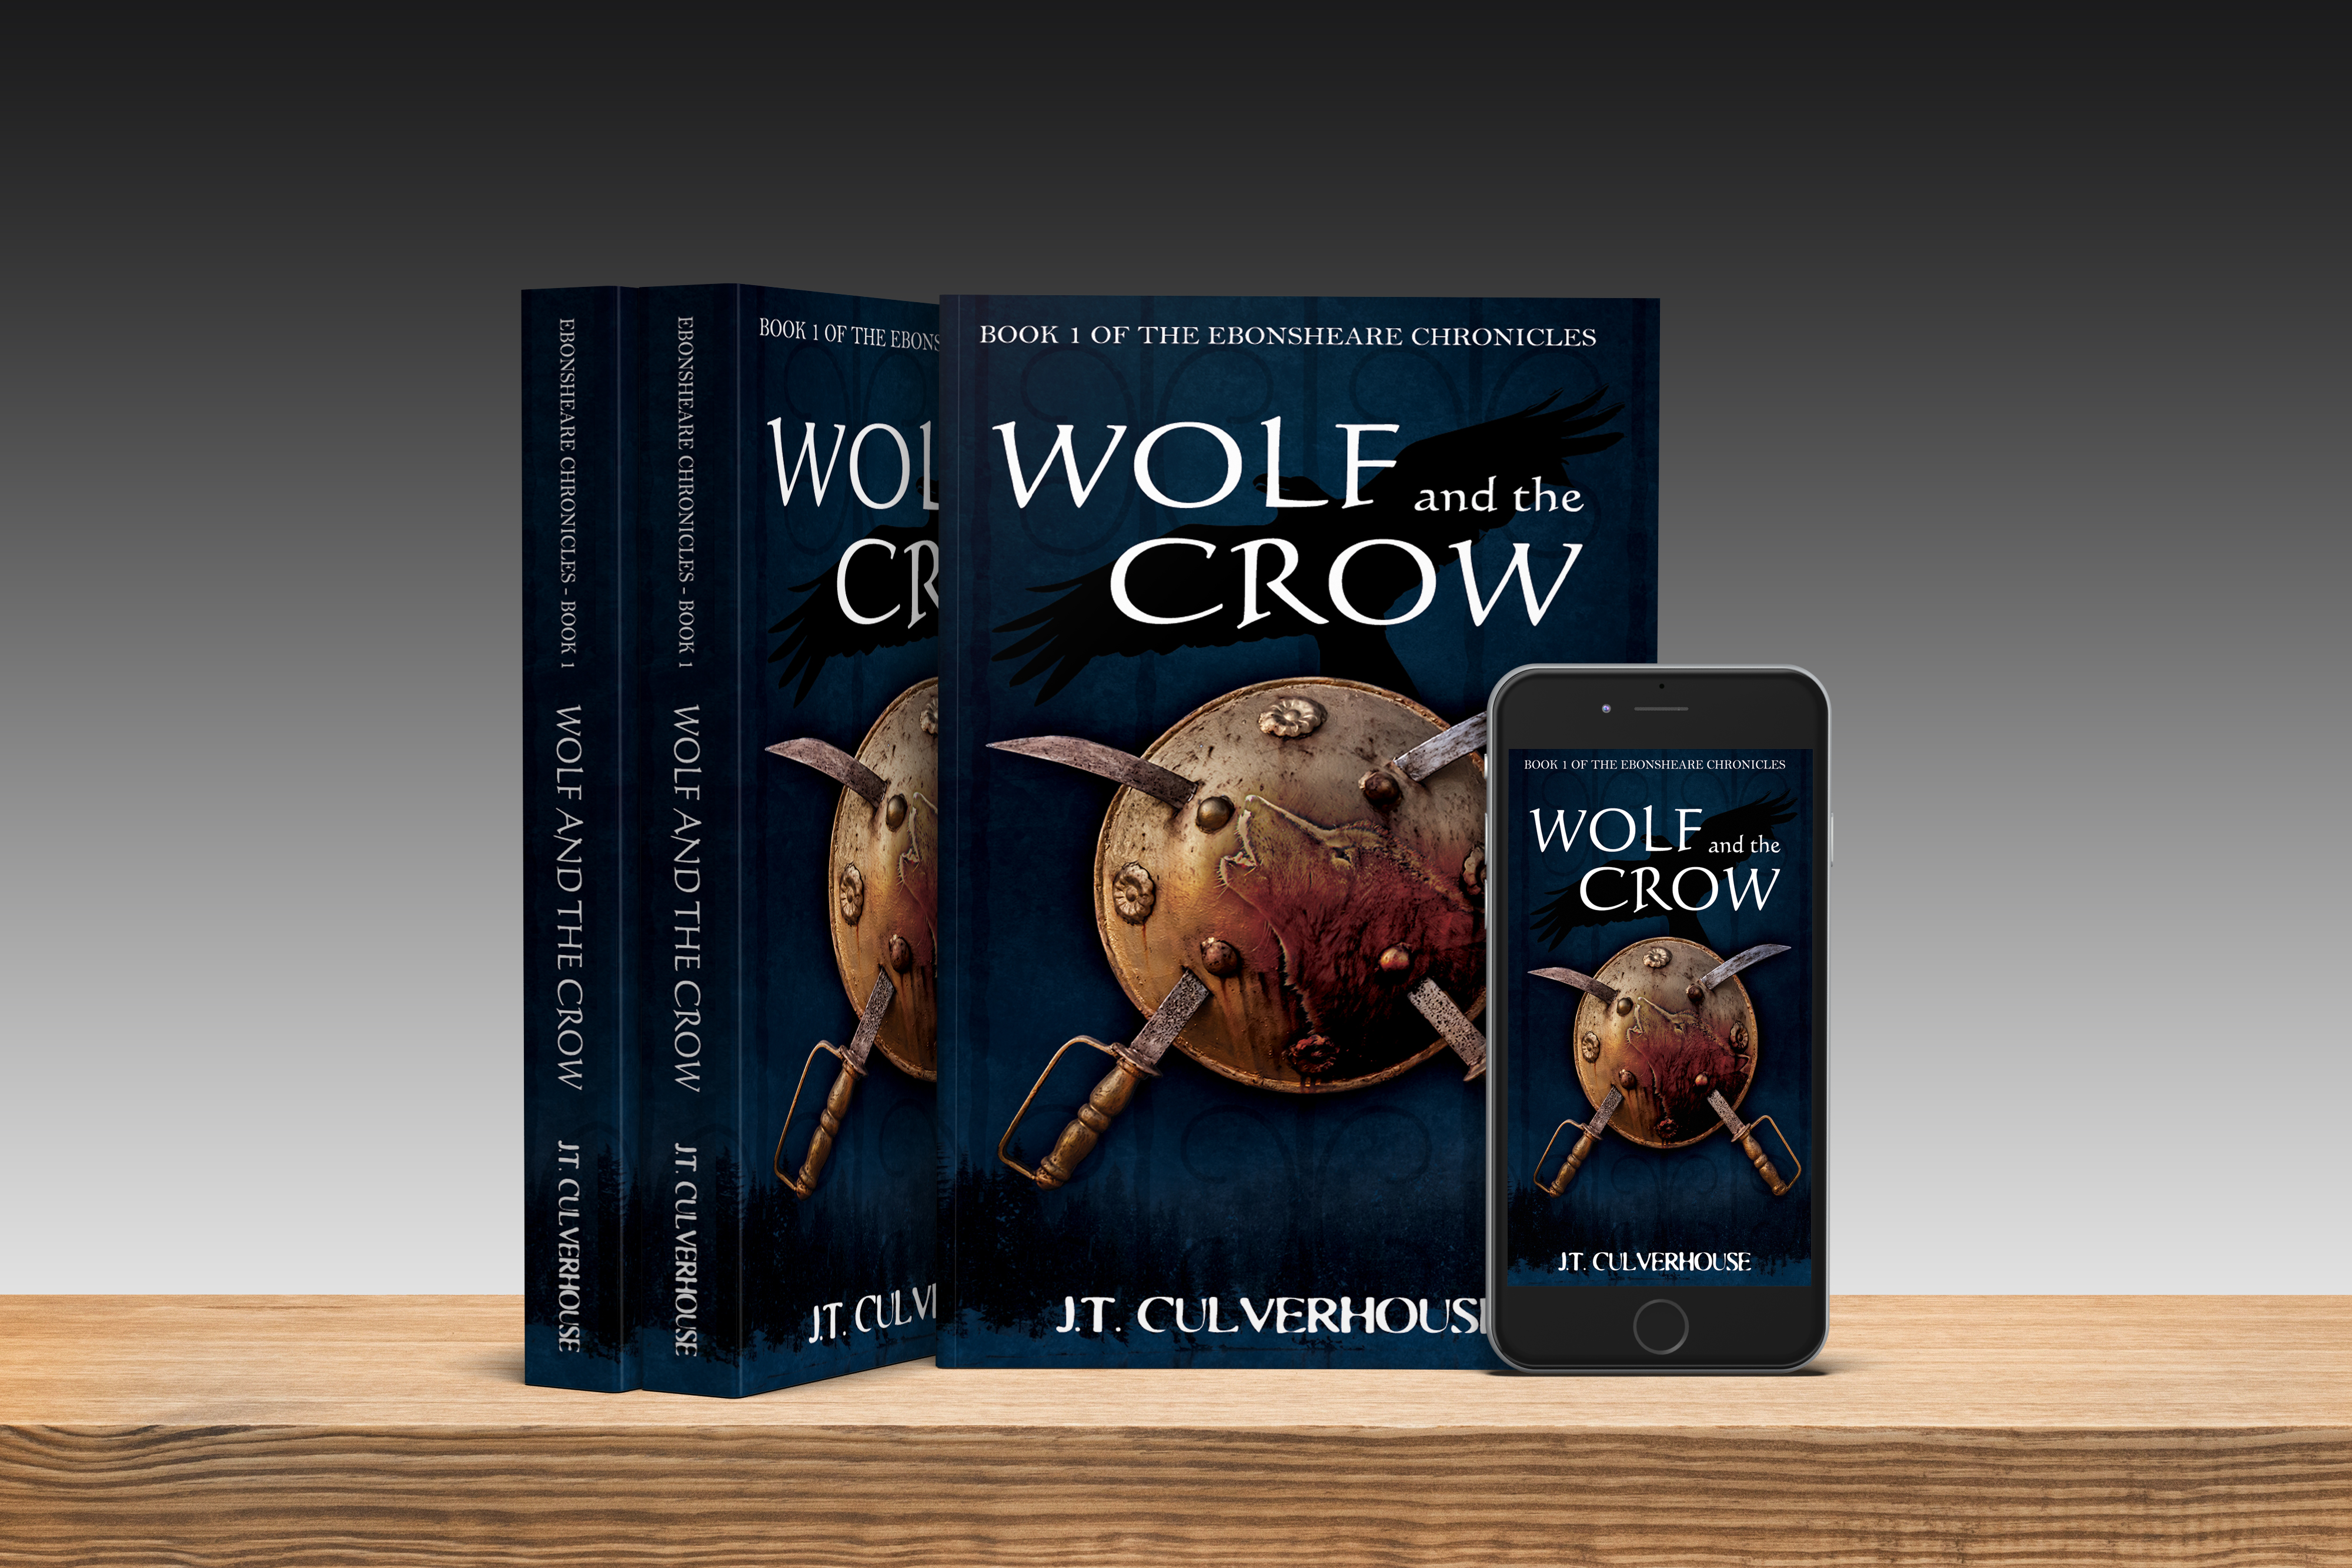 Wolf and the Crow now available on paperback.